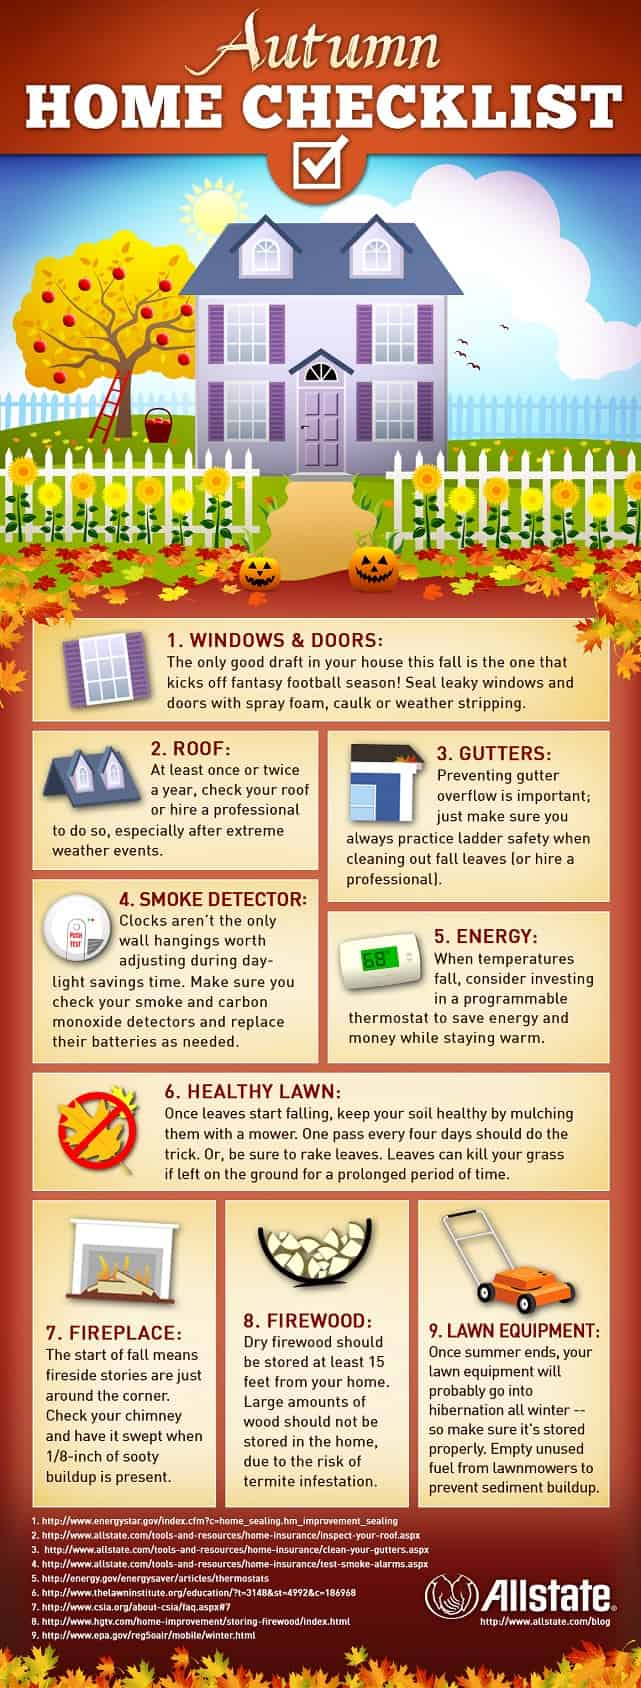 autumn-checklist-allstate